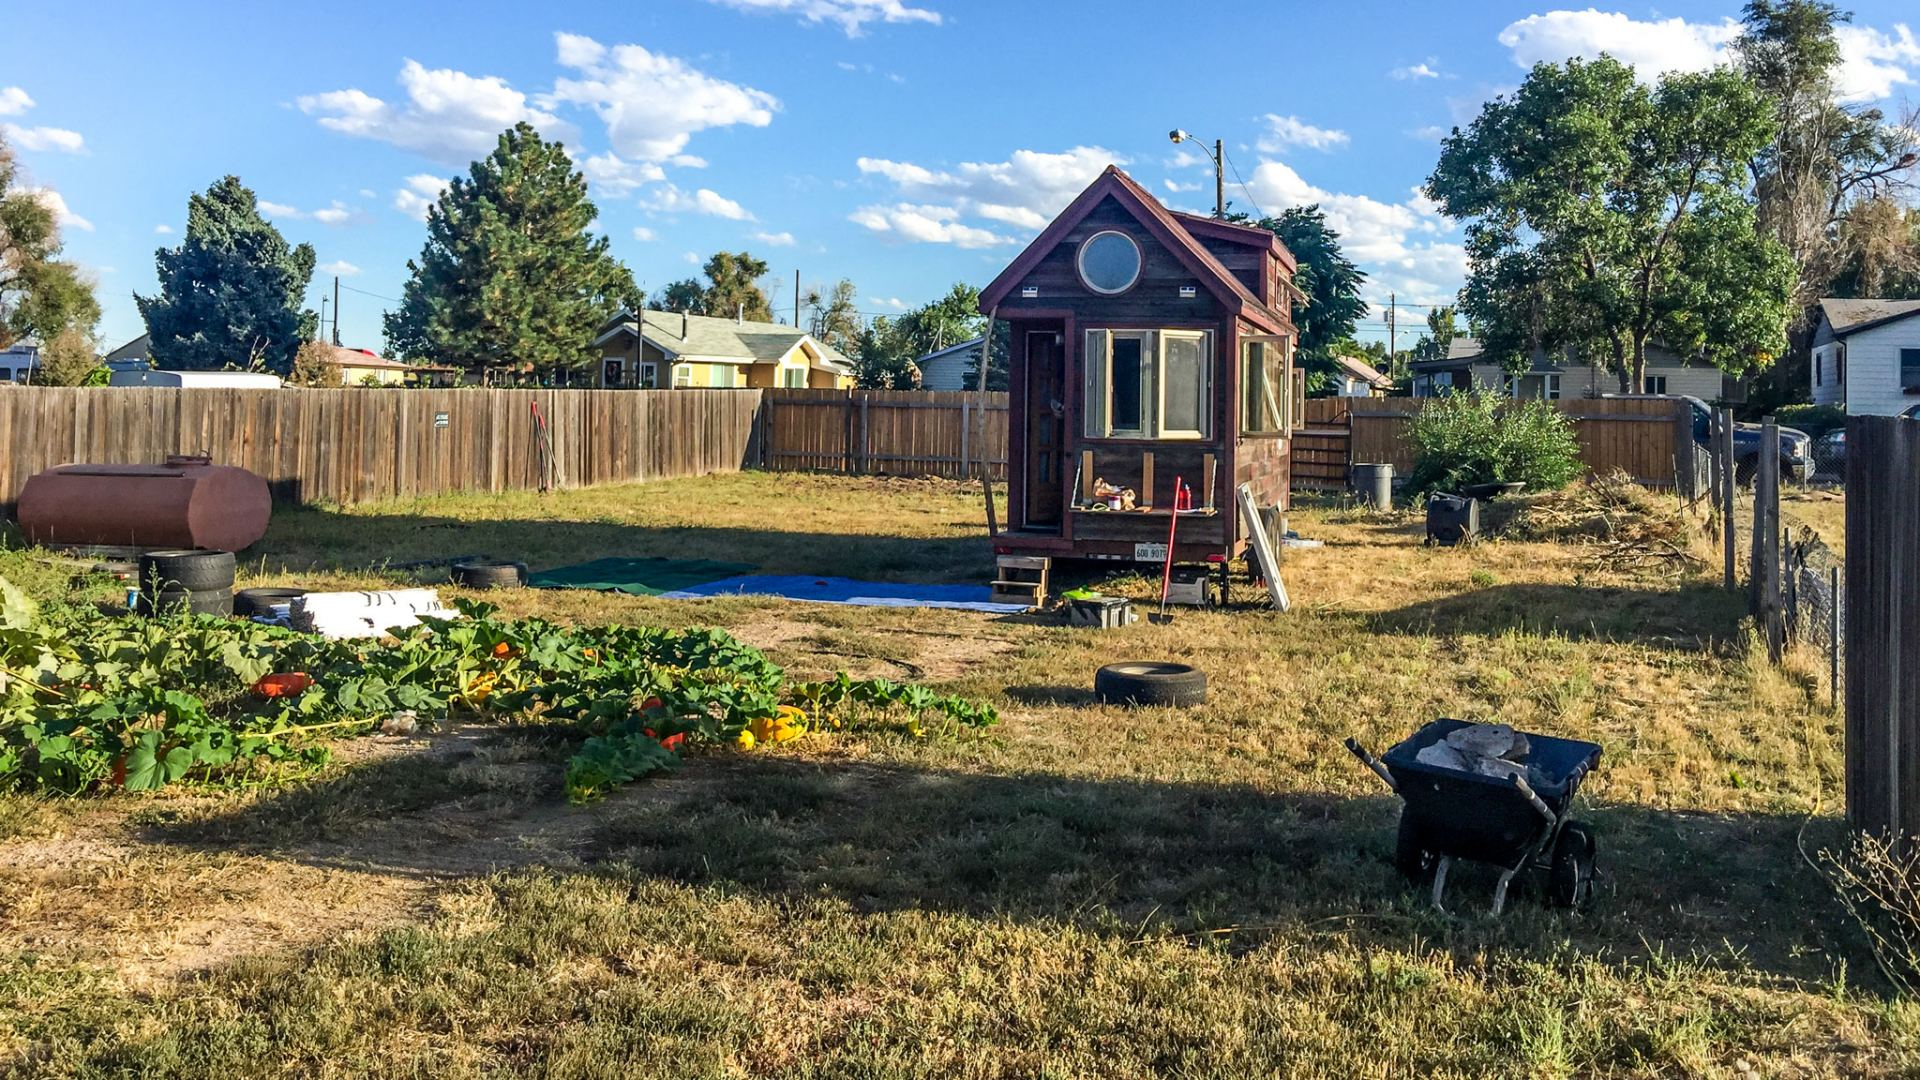 As We Maneuvered Into The Backyard, A Few Neighbors Came Out To Ask  Questions About Our Tiny House.